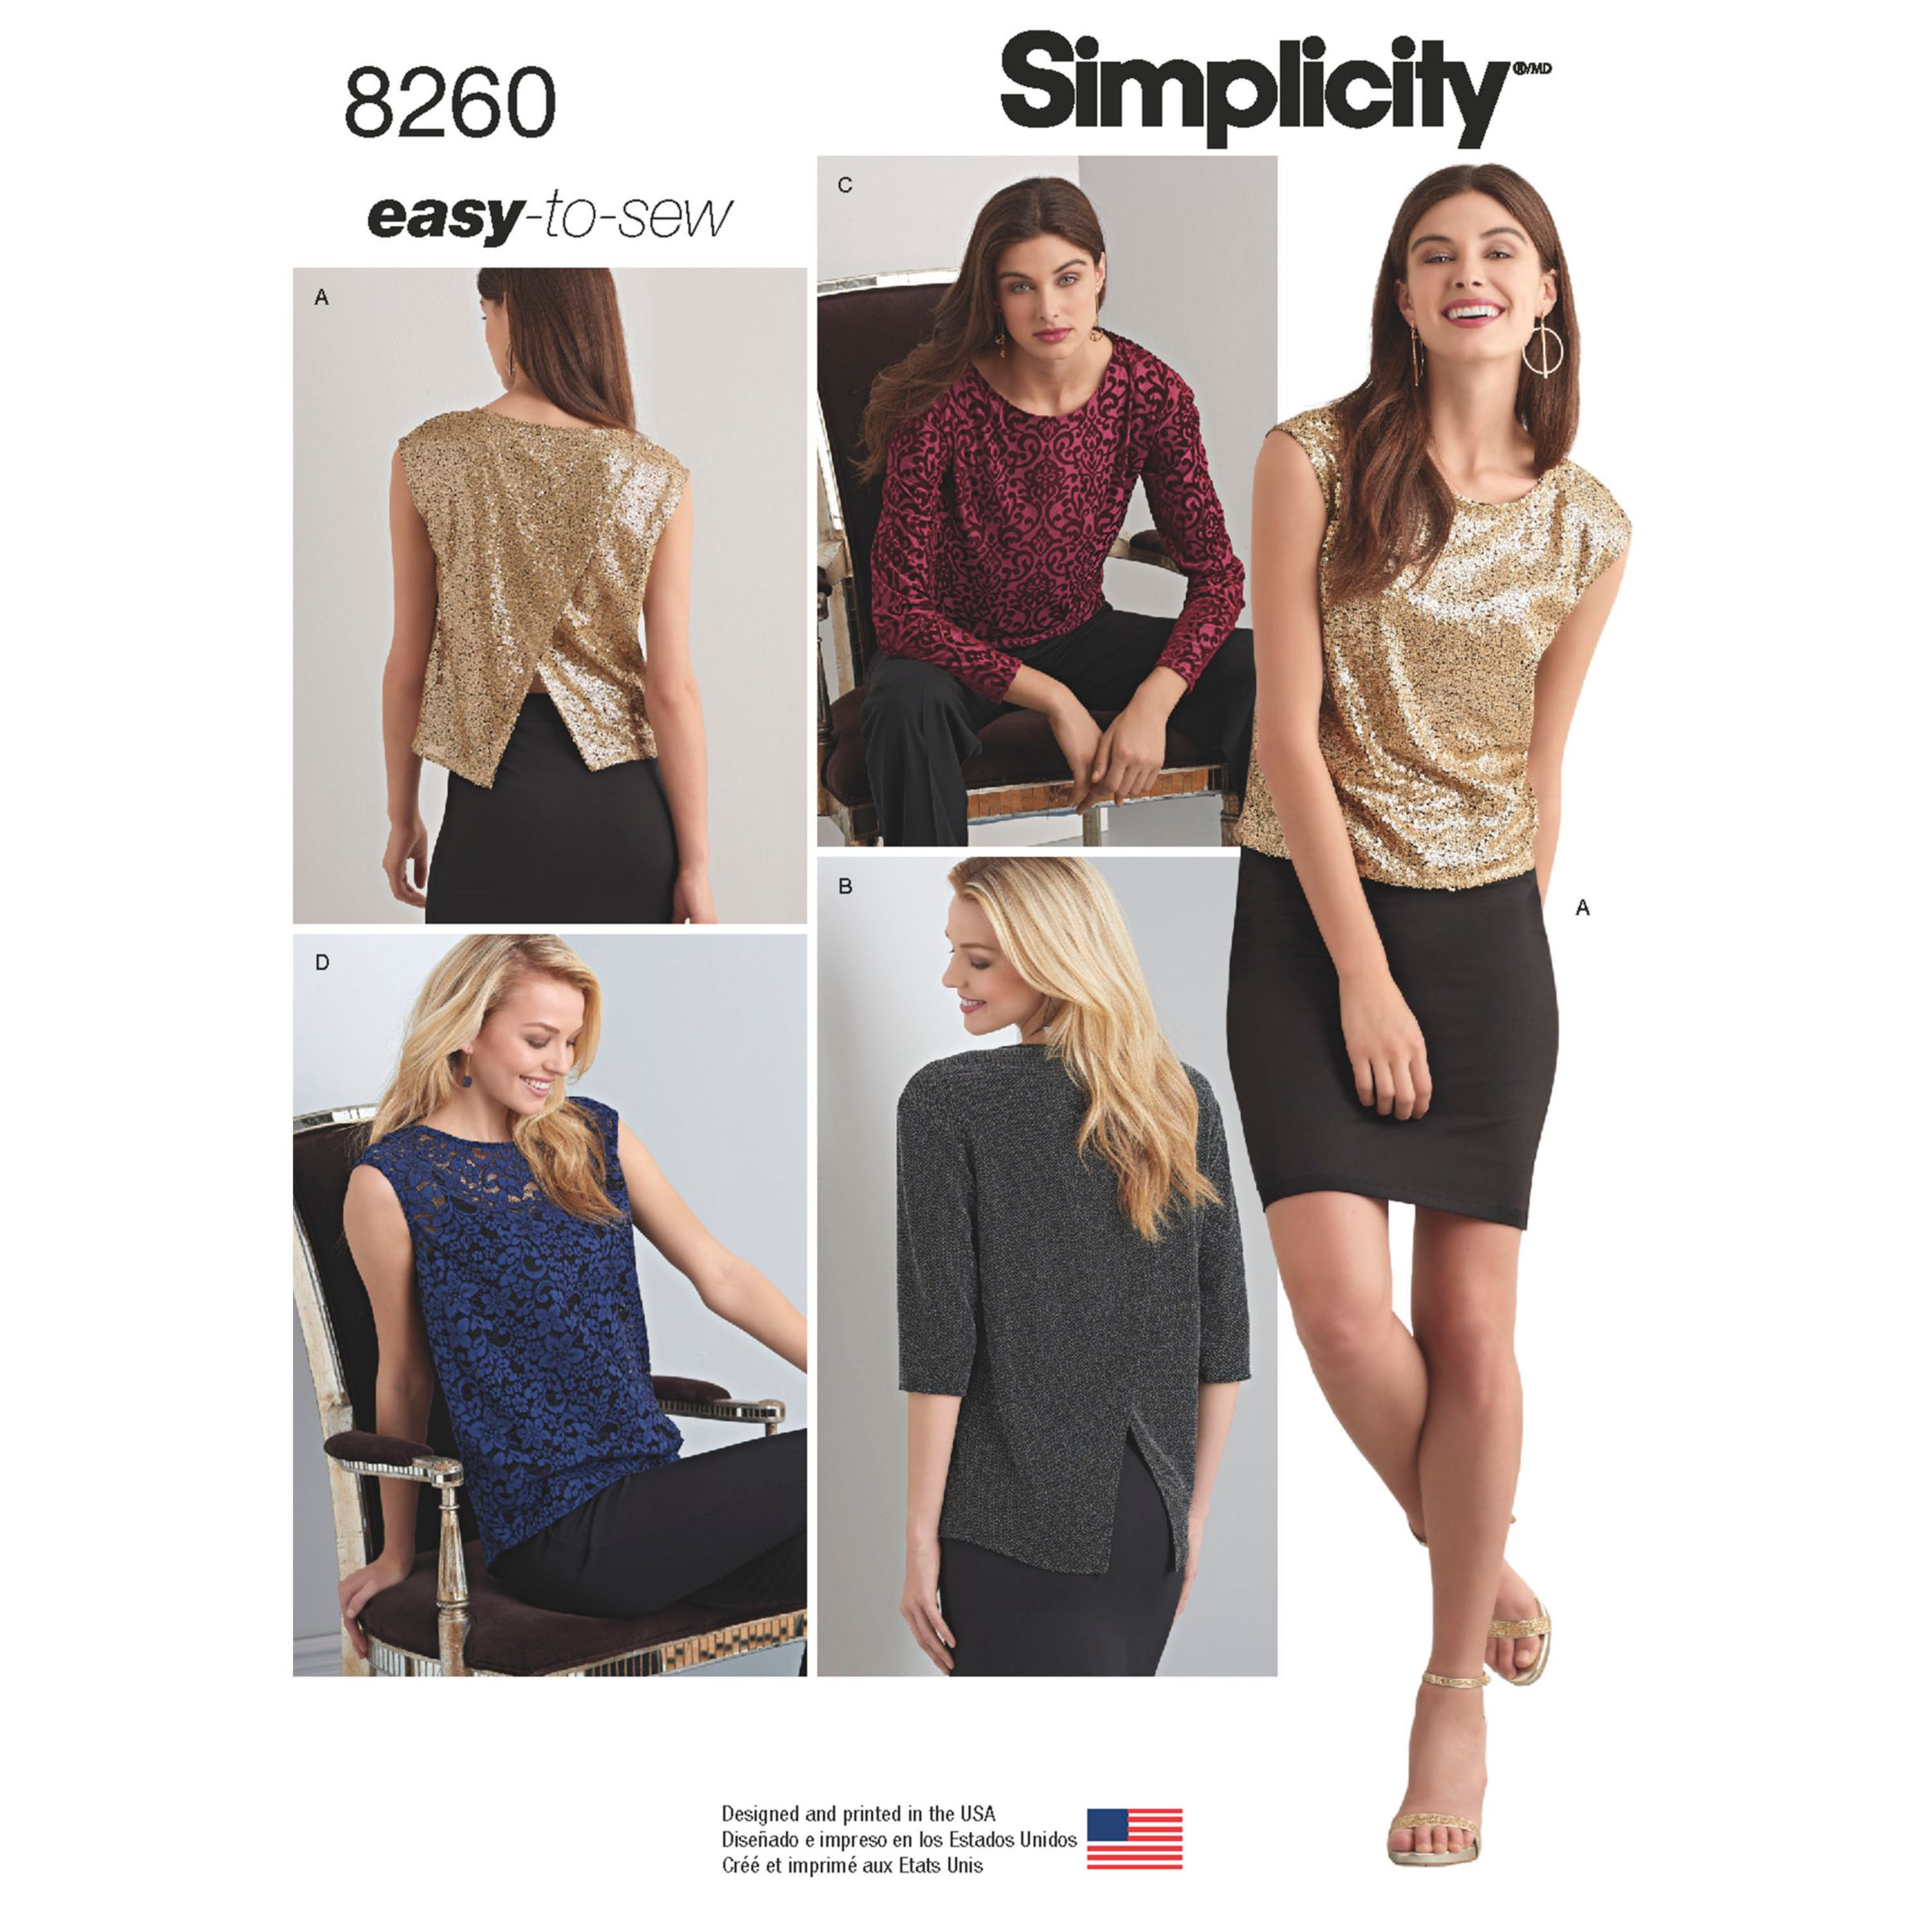 Simplicity Simplicity Easy to Sew Top with Asymmetric Back Sewing Pattern, 8260, A